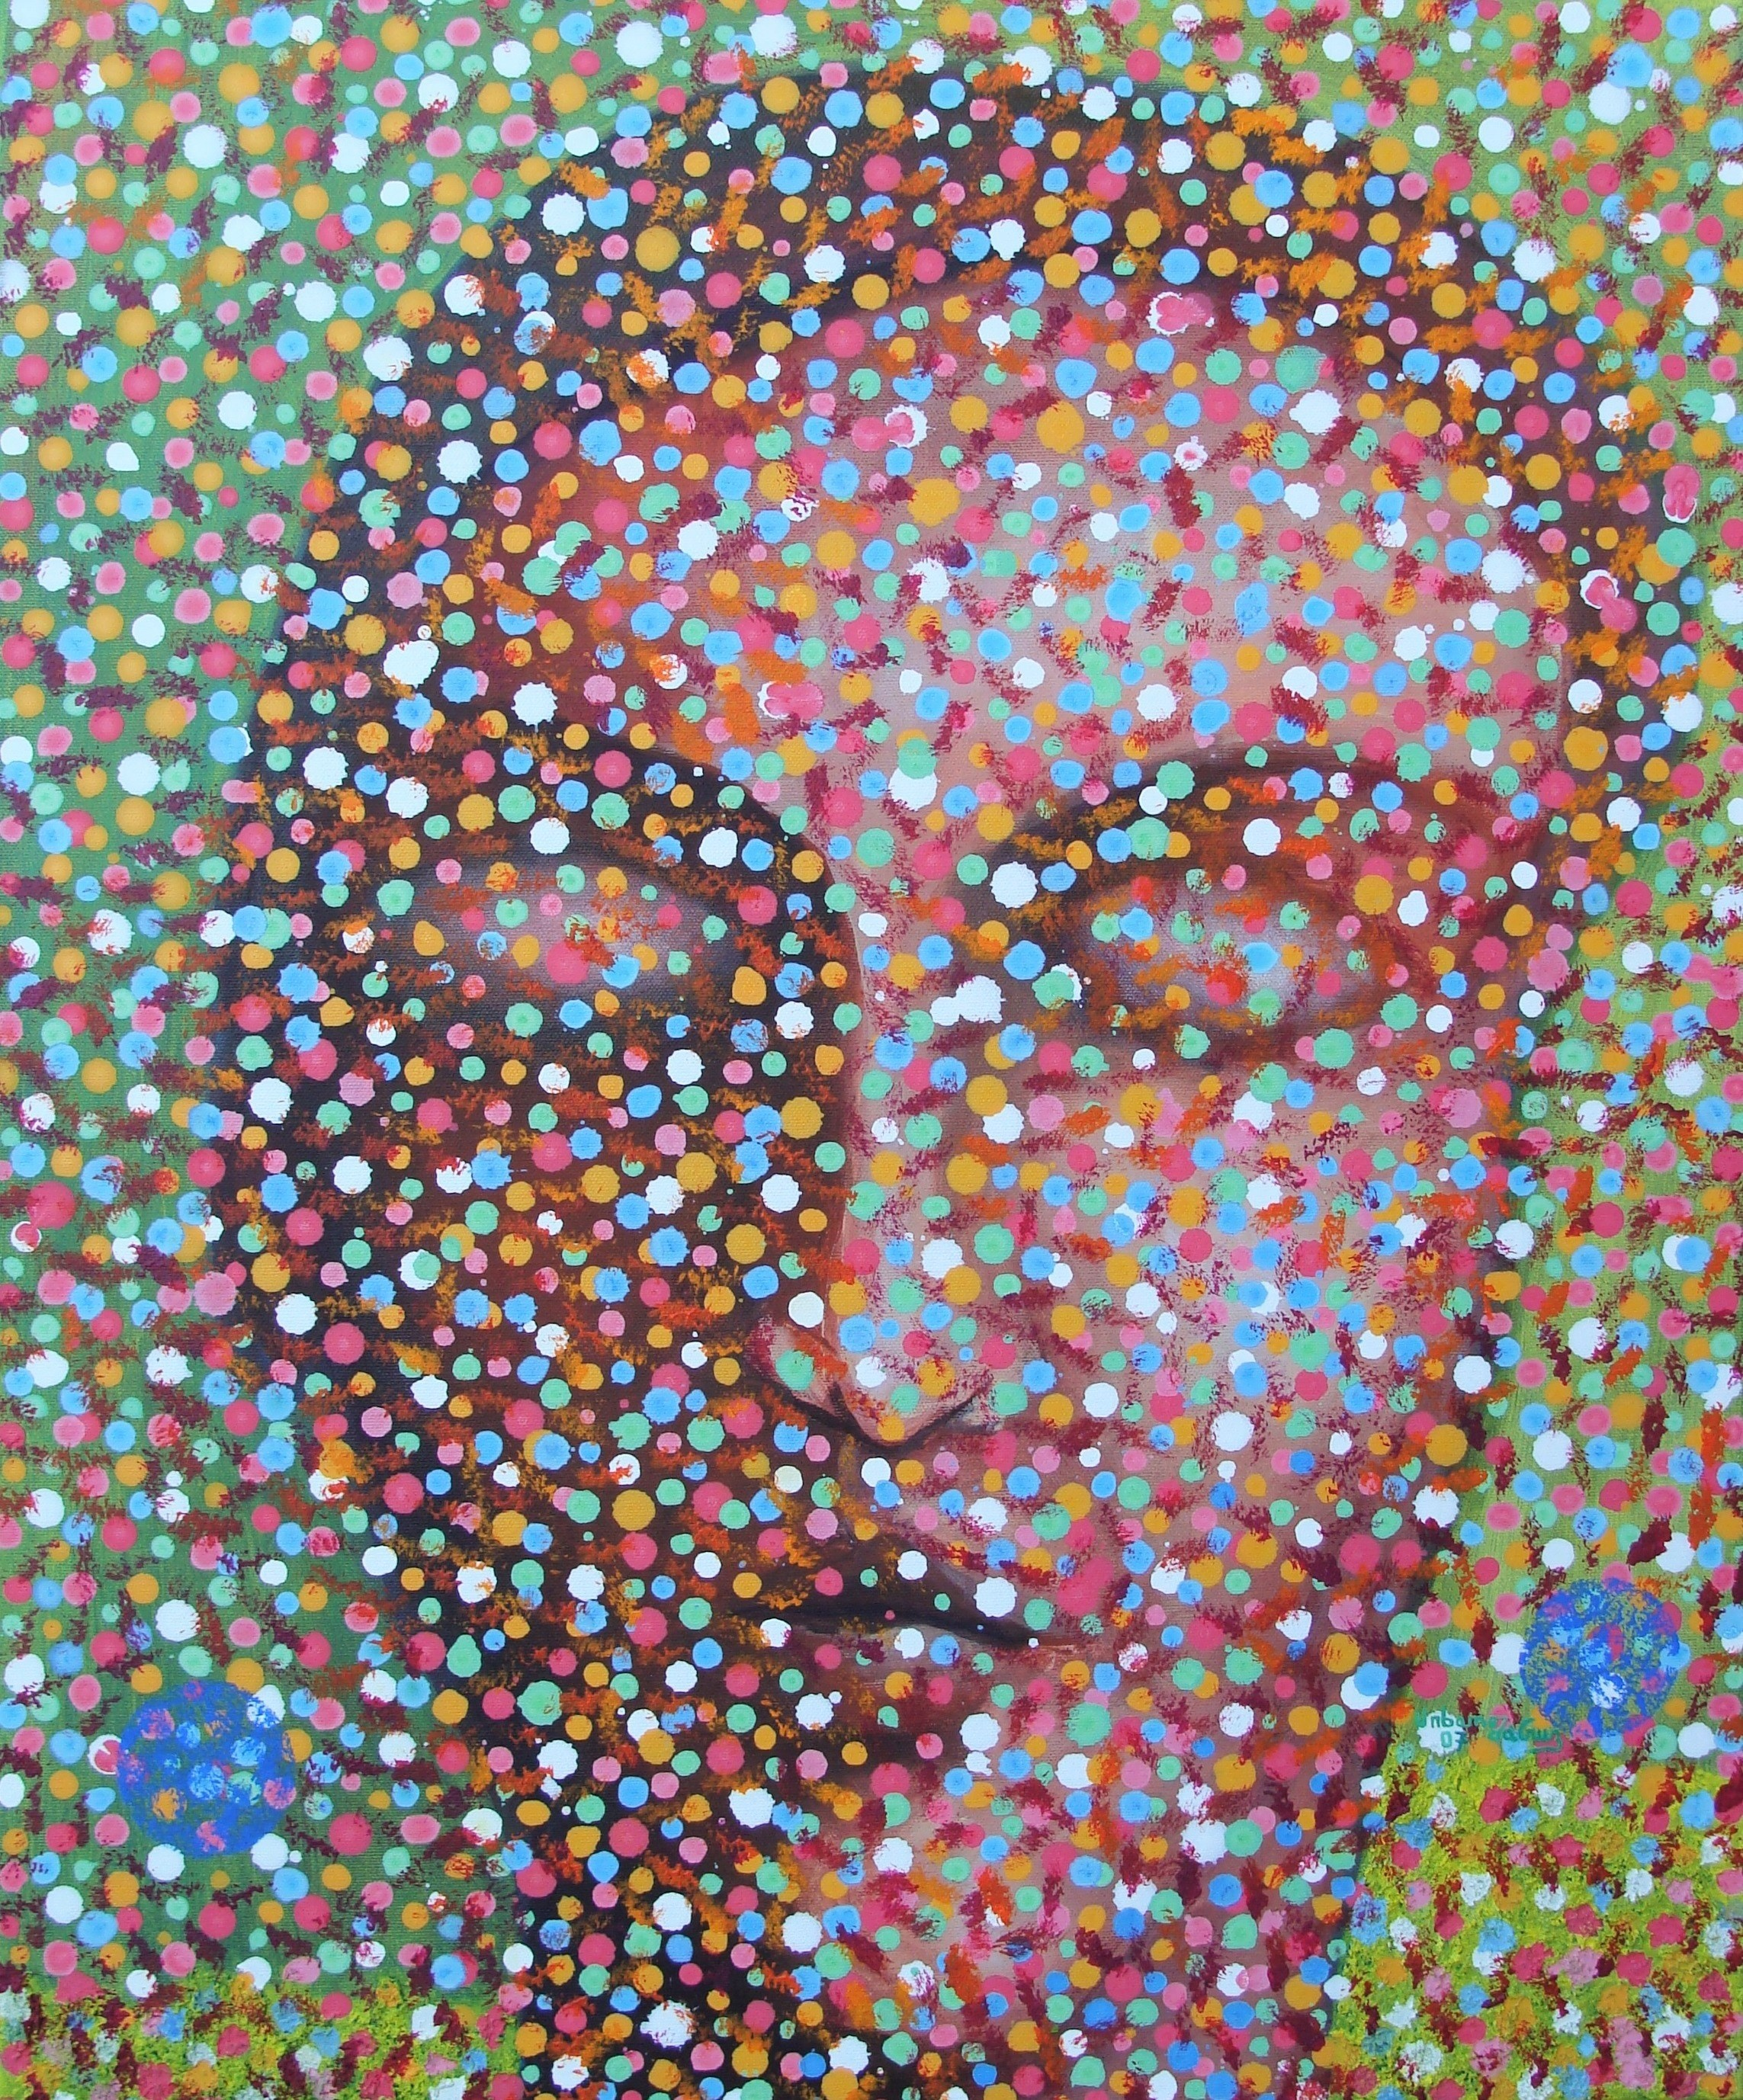 Meditativo., original Portrait Acrylic Painting by Urbano da Cruz